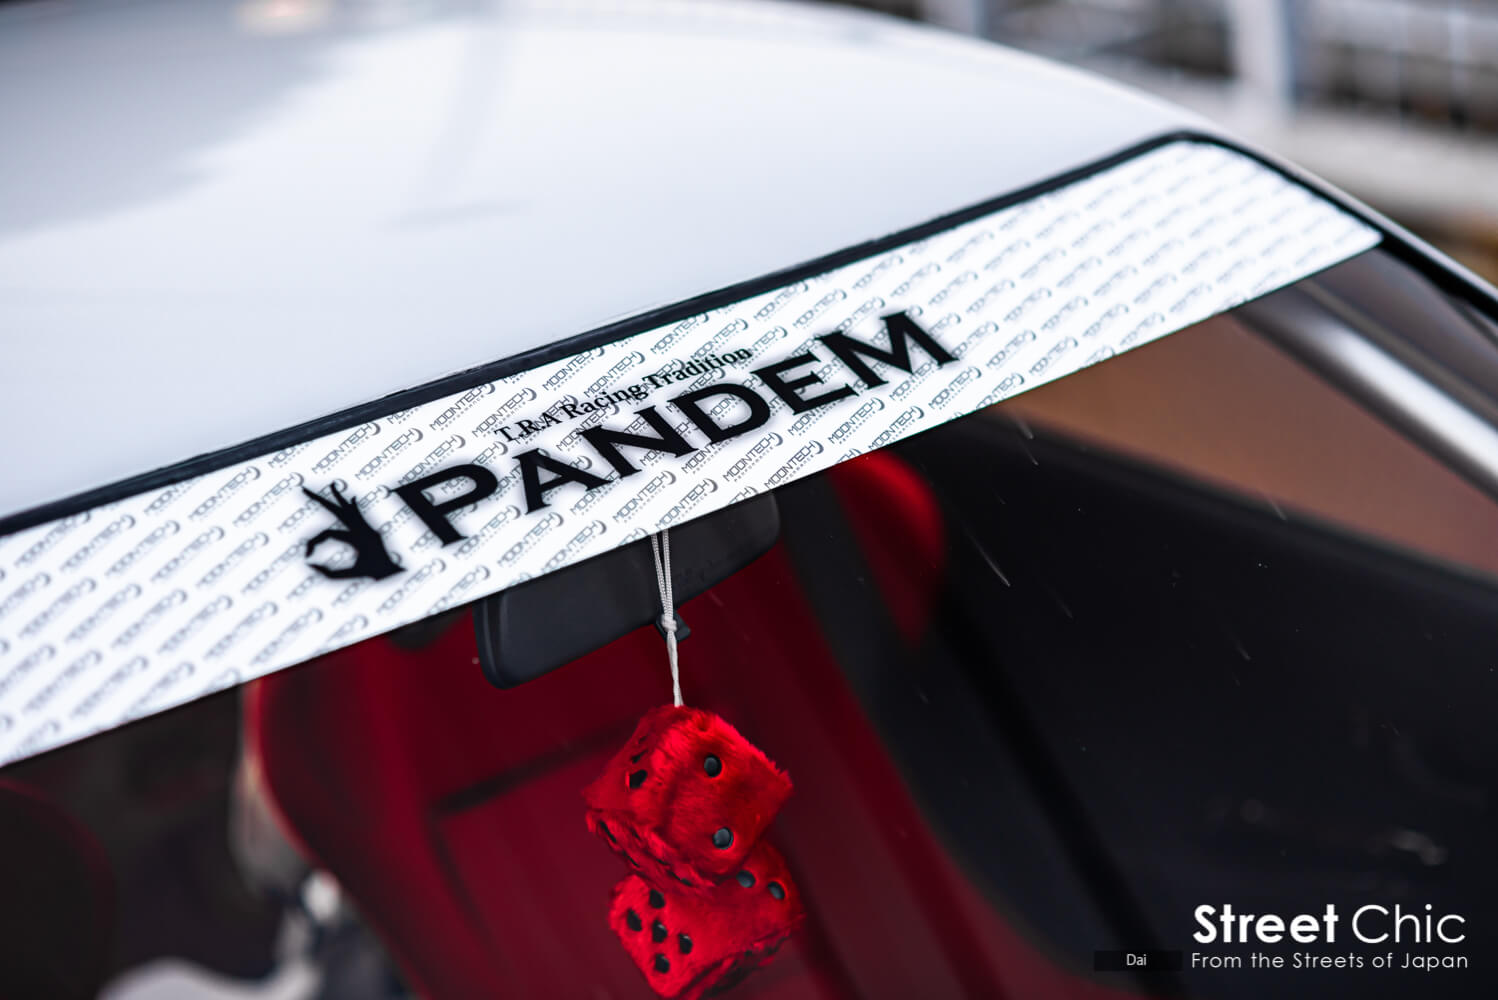 PANDEM Silvia S13 'Addition' style is coming!